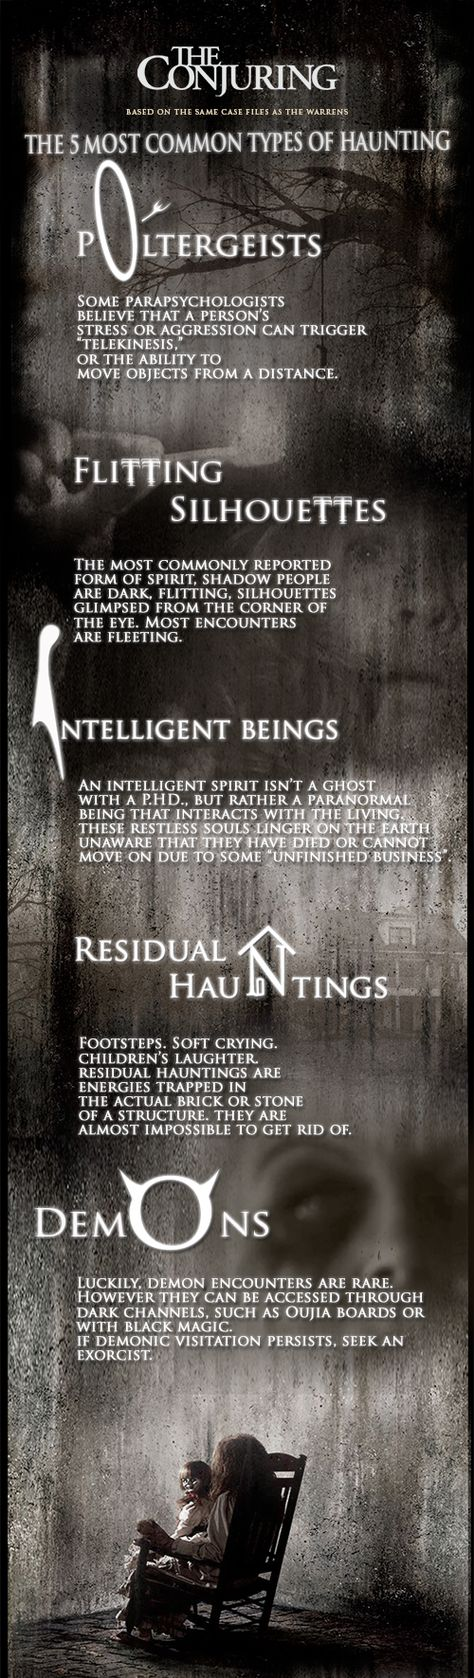 The Conjuring (2013) The 5 Most Common Types of Haunting